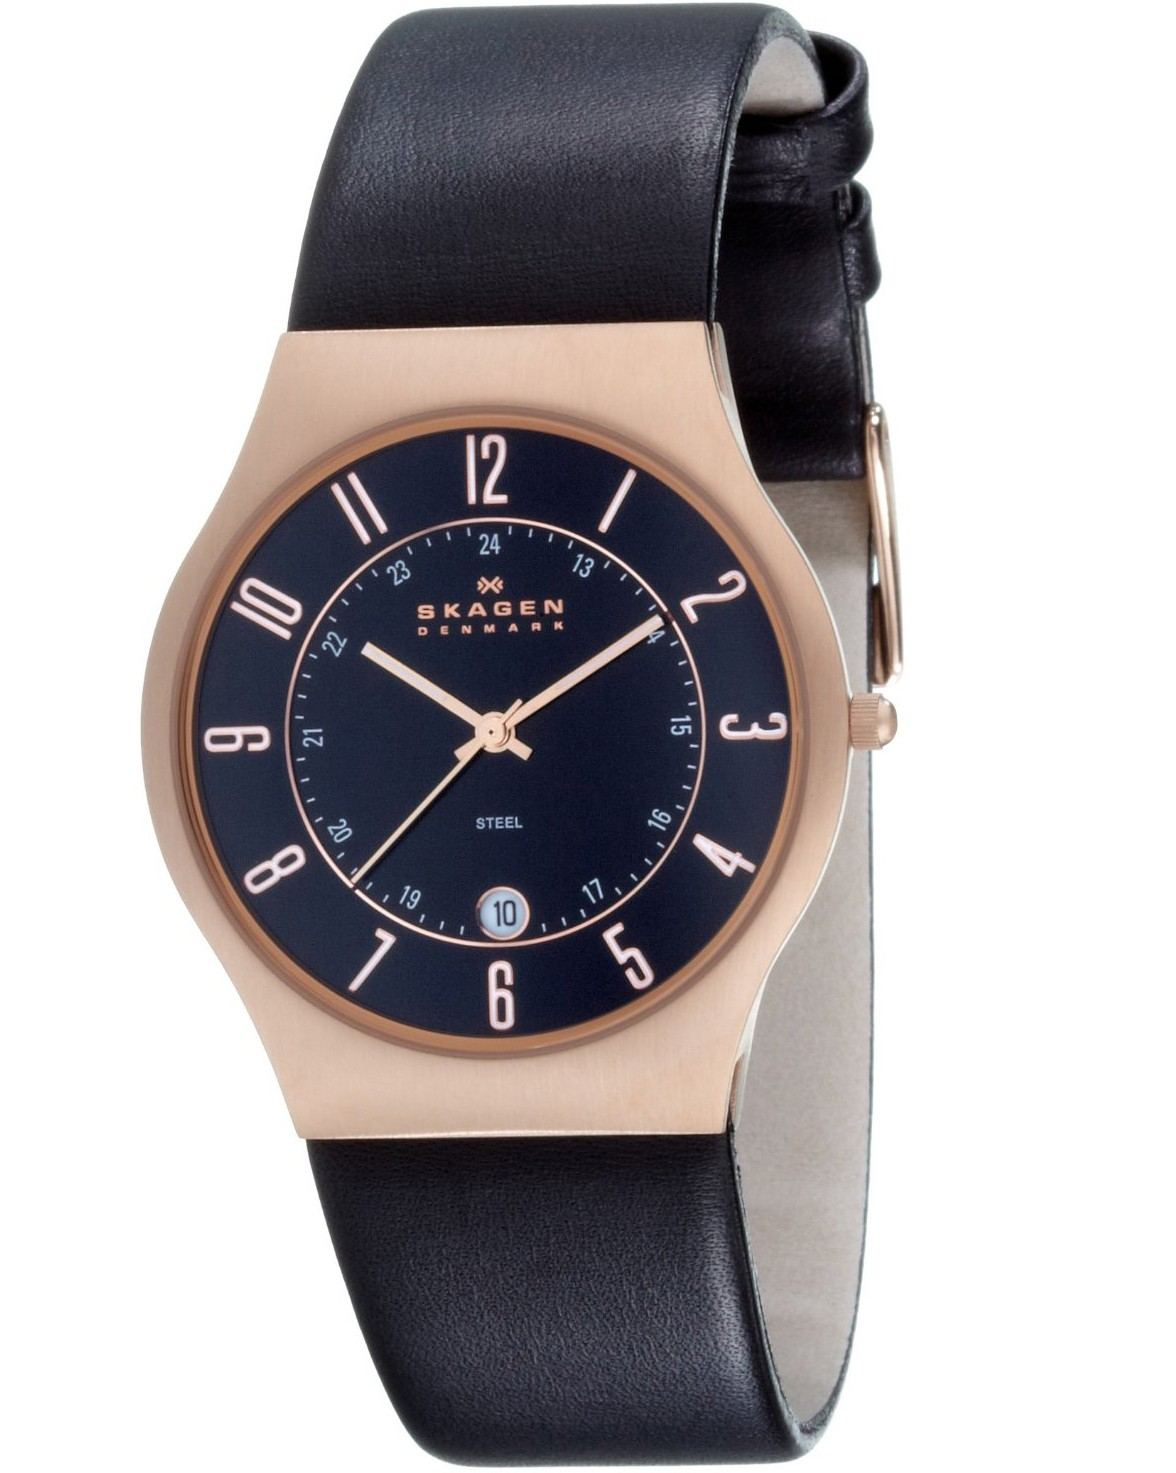 Skagen Men's 233XXLRLB Denmark Classic Rose Gold Case Watch